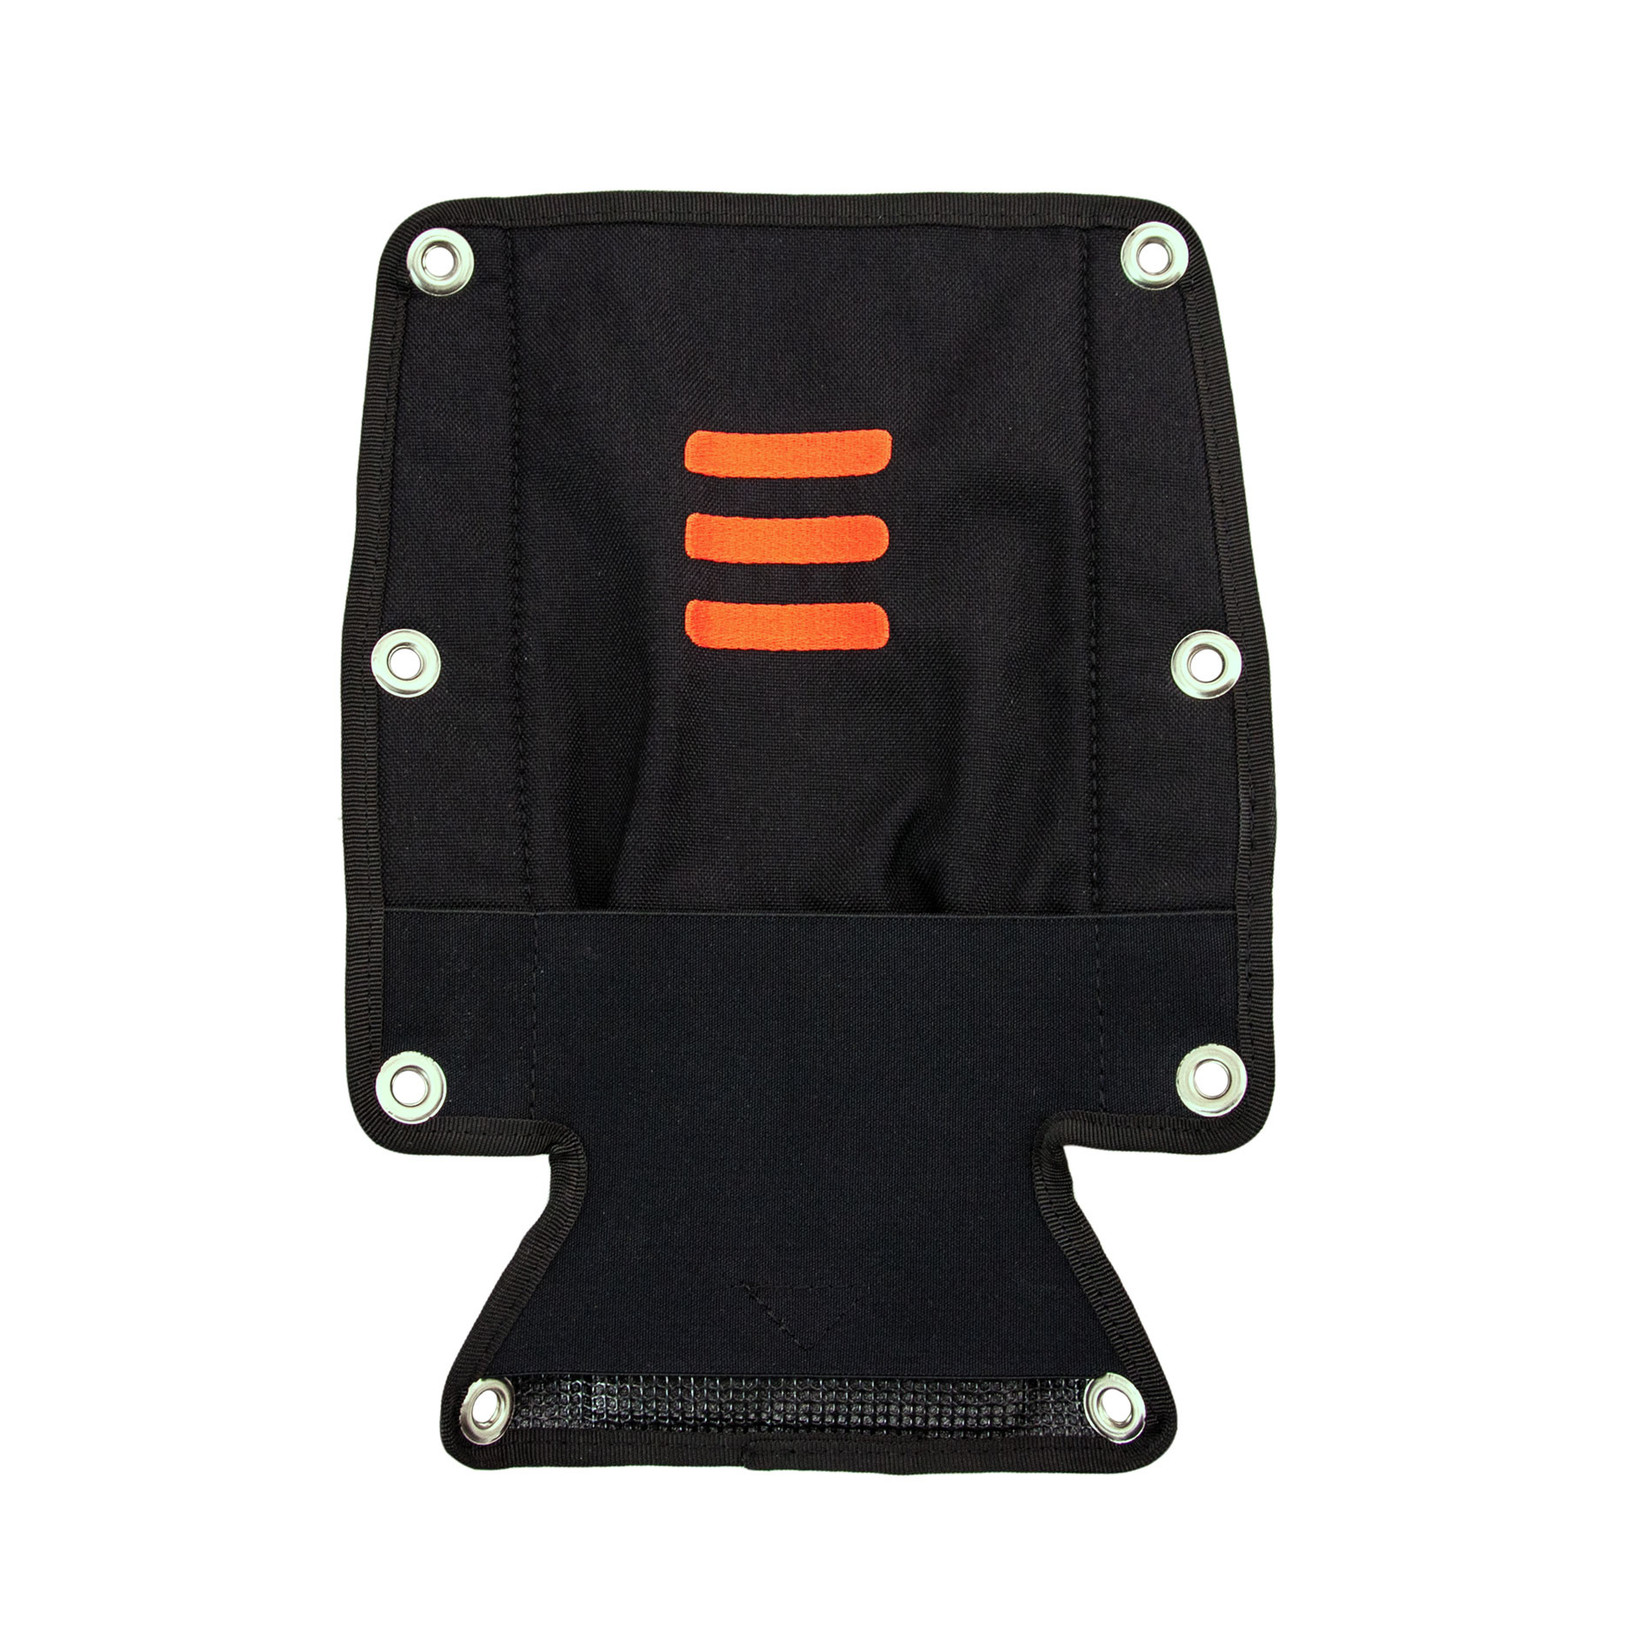 Tecline Backplate soft pad with buoy pocket - without bolts and nuts